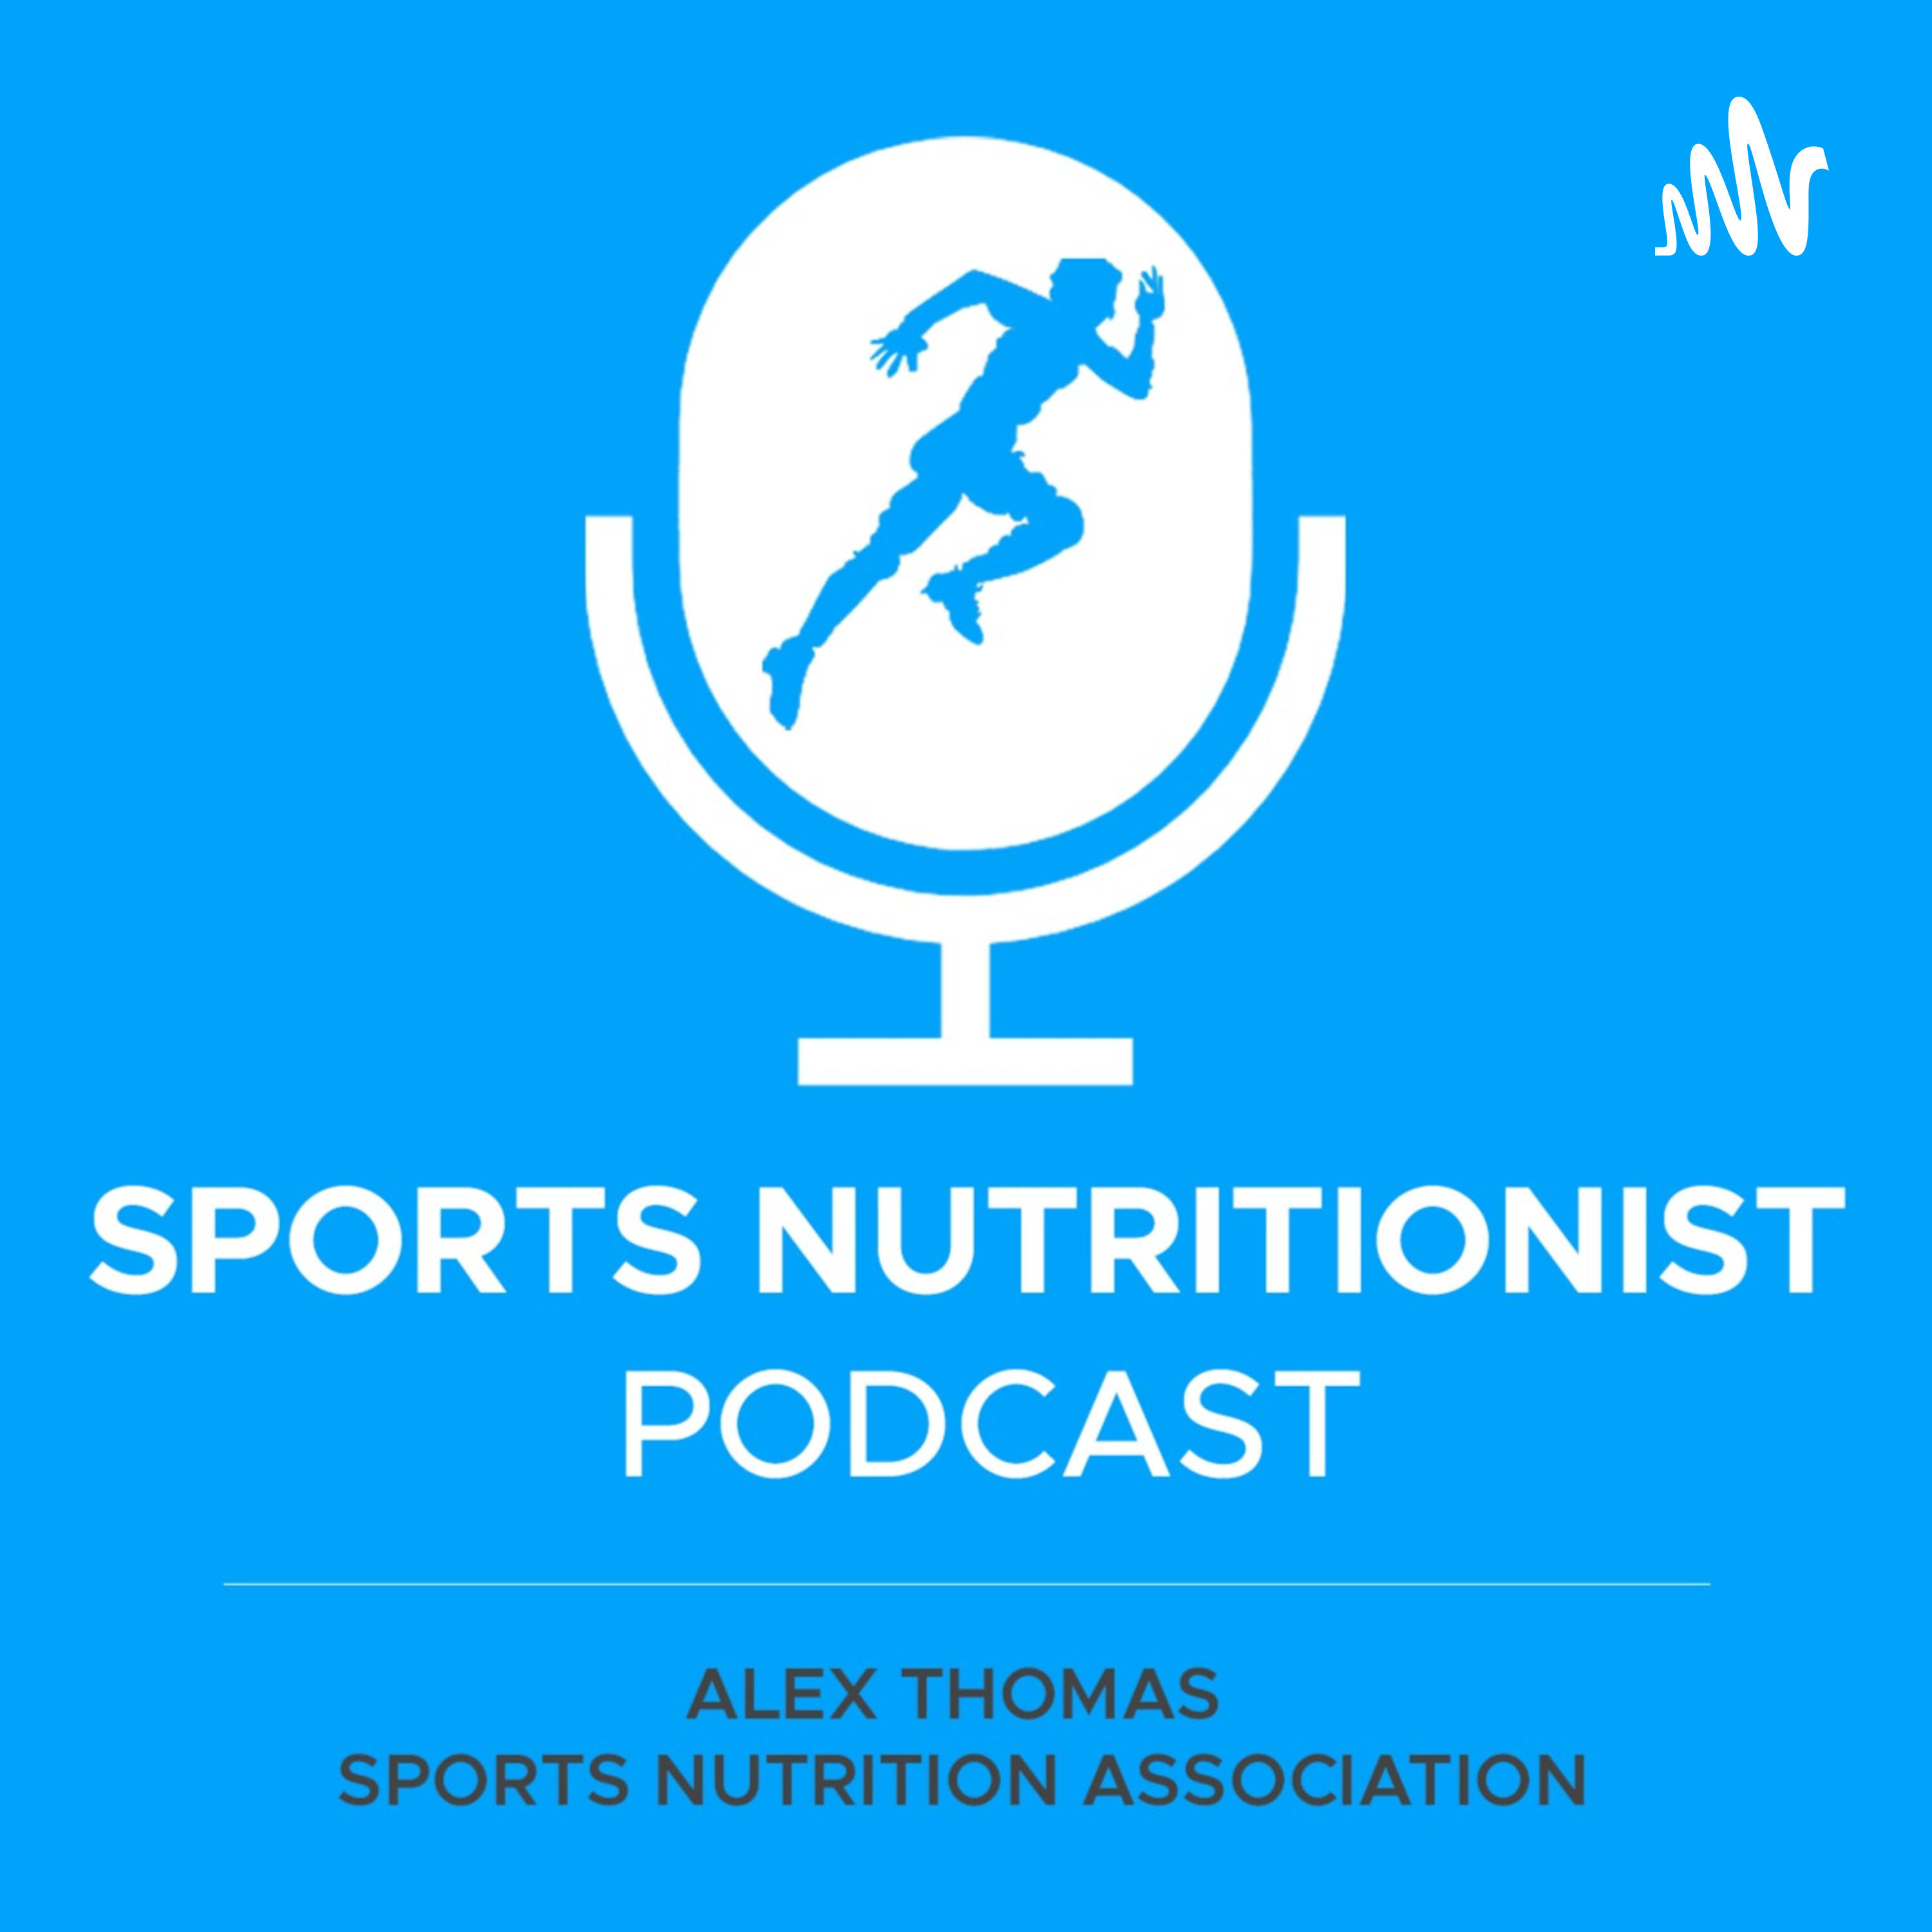 Sports Nutritionist Podcast